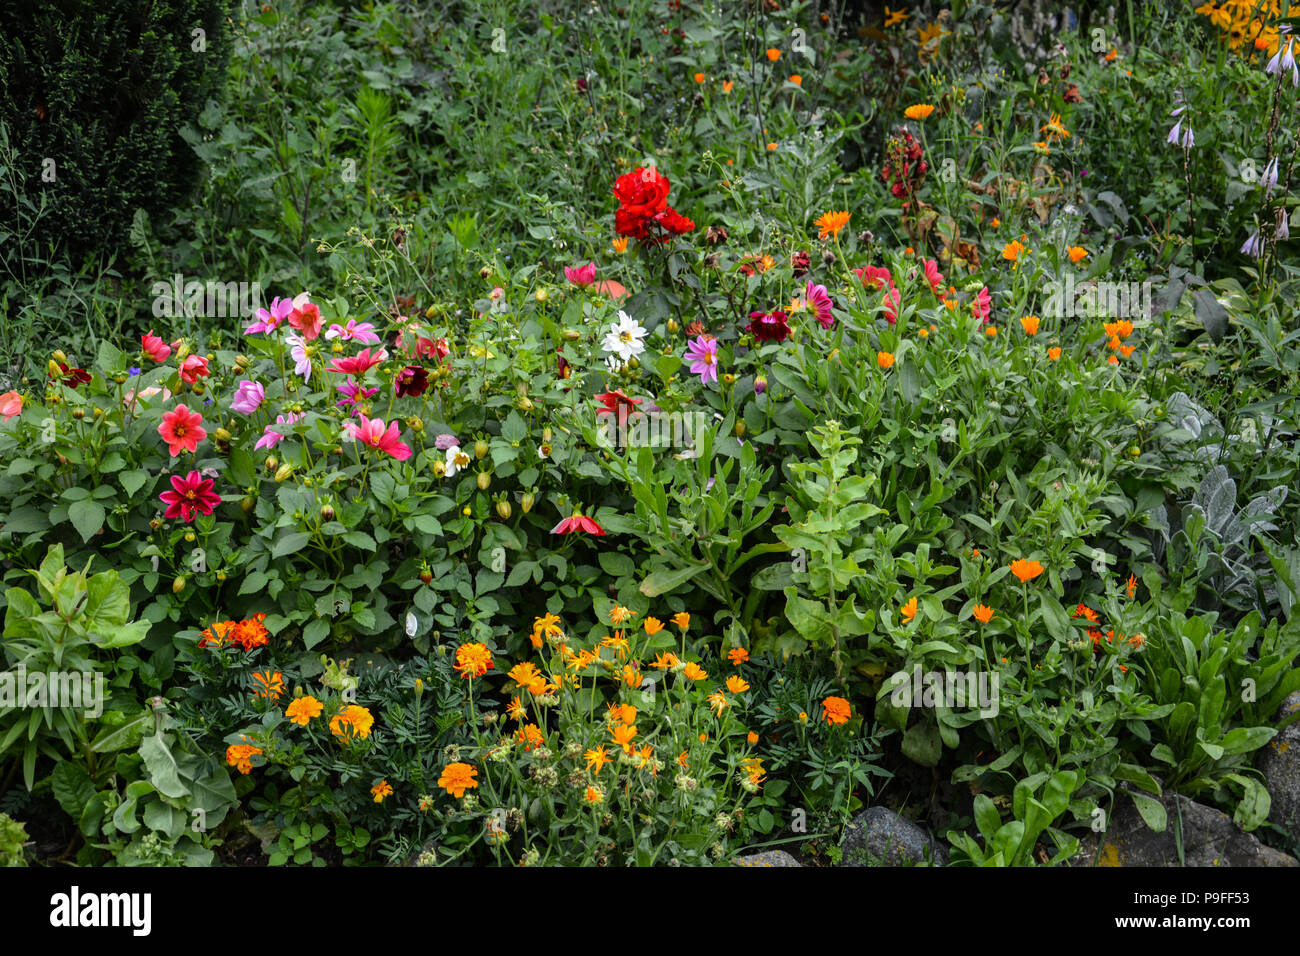 ellow, orange and red flowers on flowerbed in summer. Varicolored flowerbed.Blossoming flowerbeds in the park.Colorful  Flowerbed and Path in a garden - Stock Image